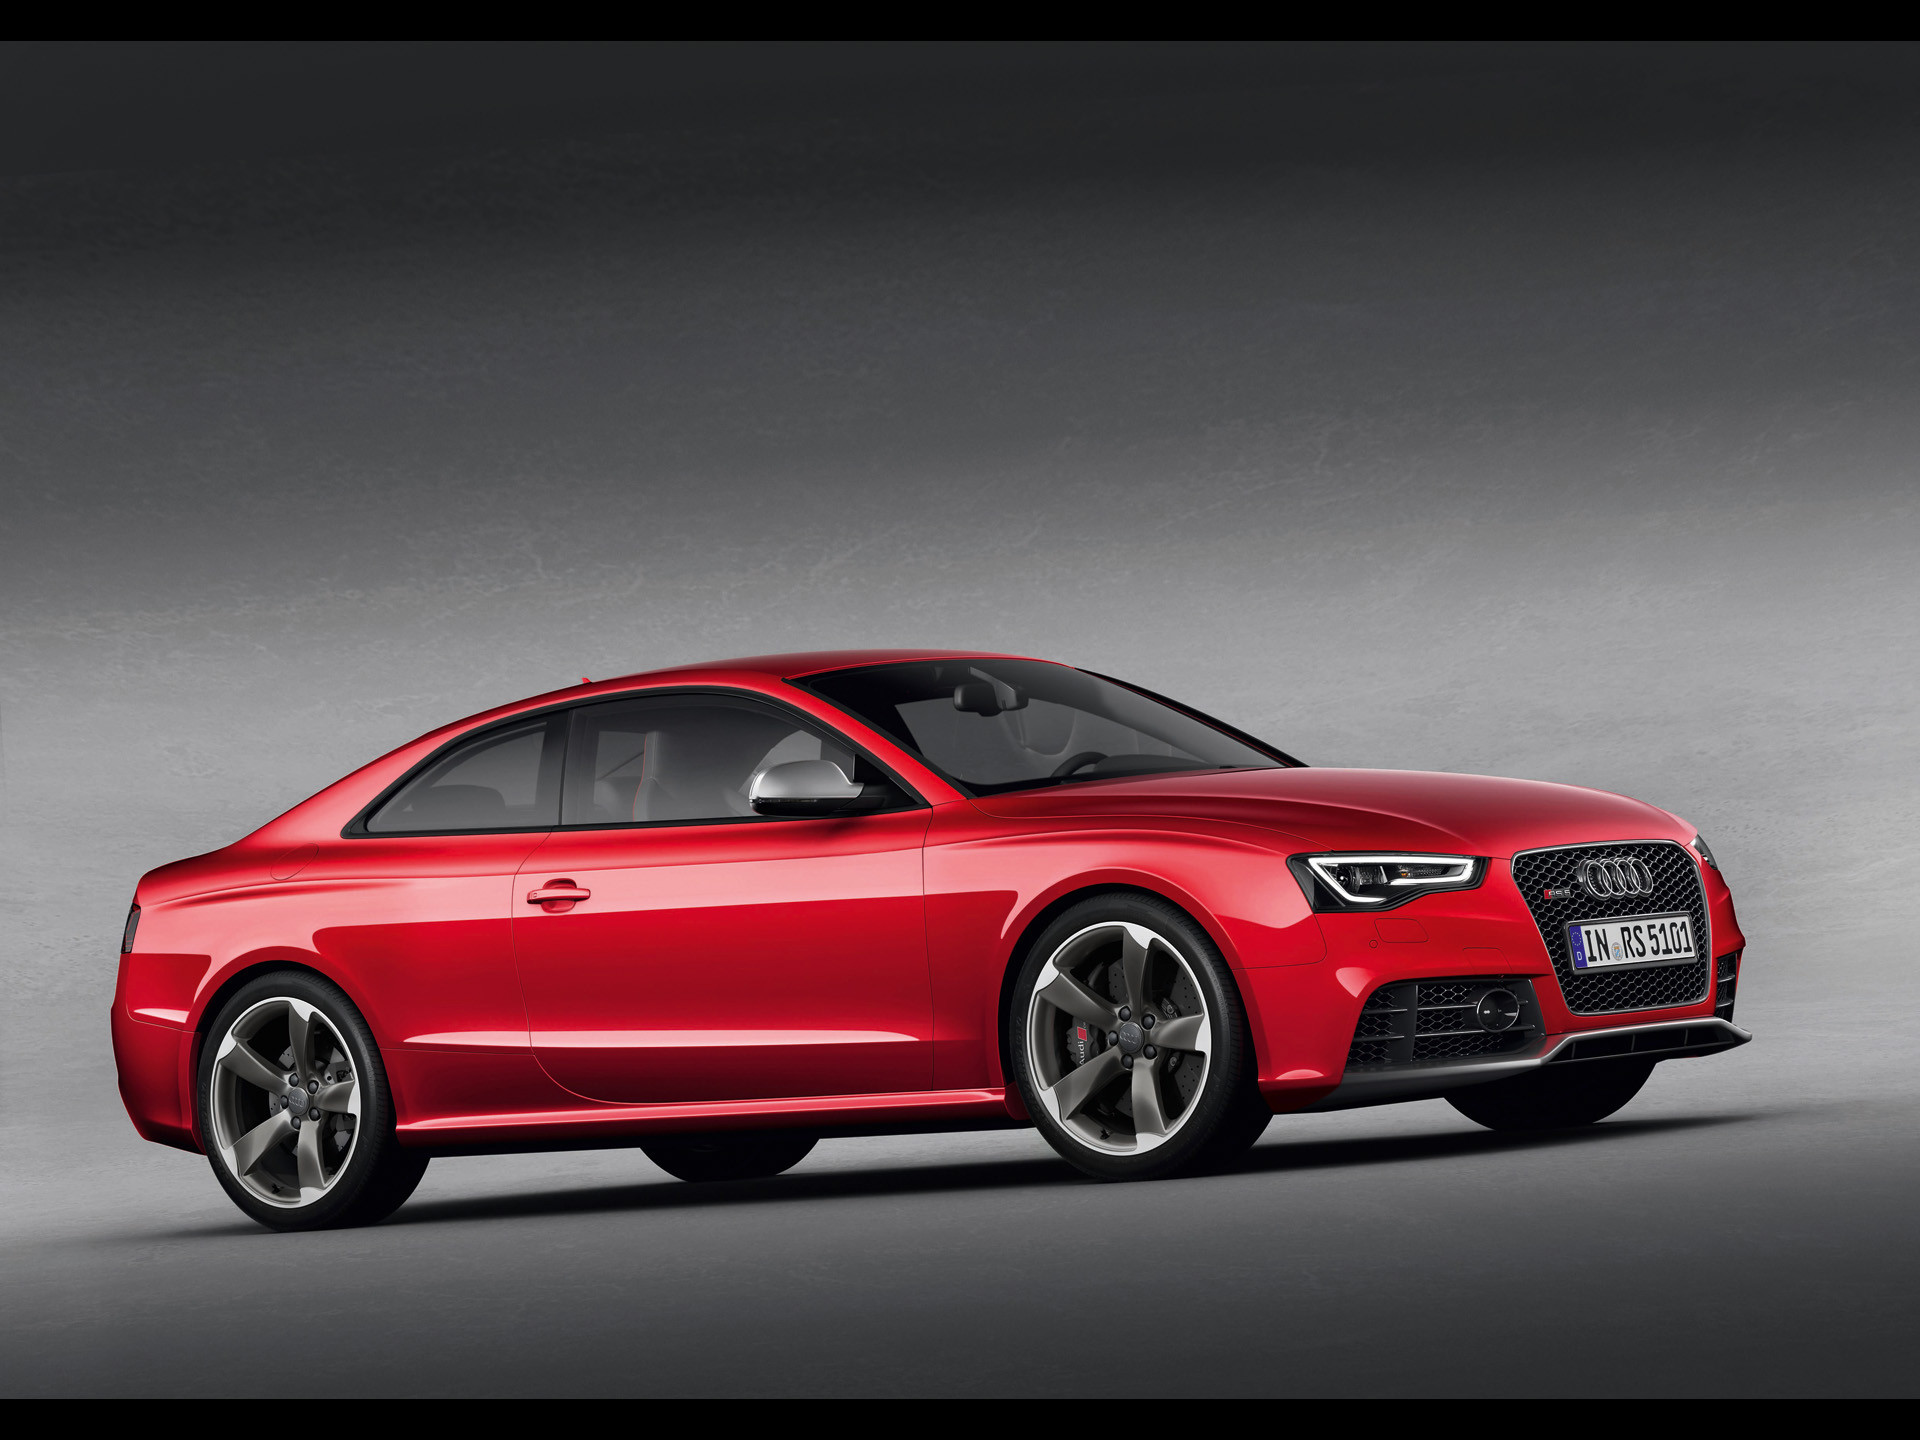 Elegant 1920x1080 Audi RS5 Tuning Front Fire Car 2014 HD